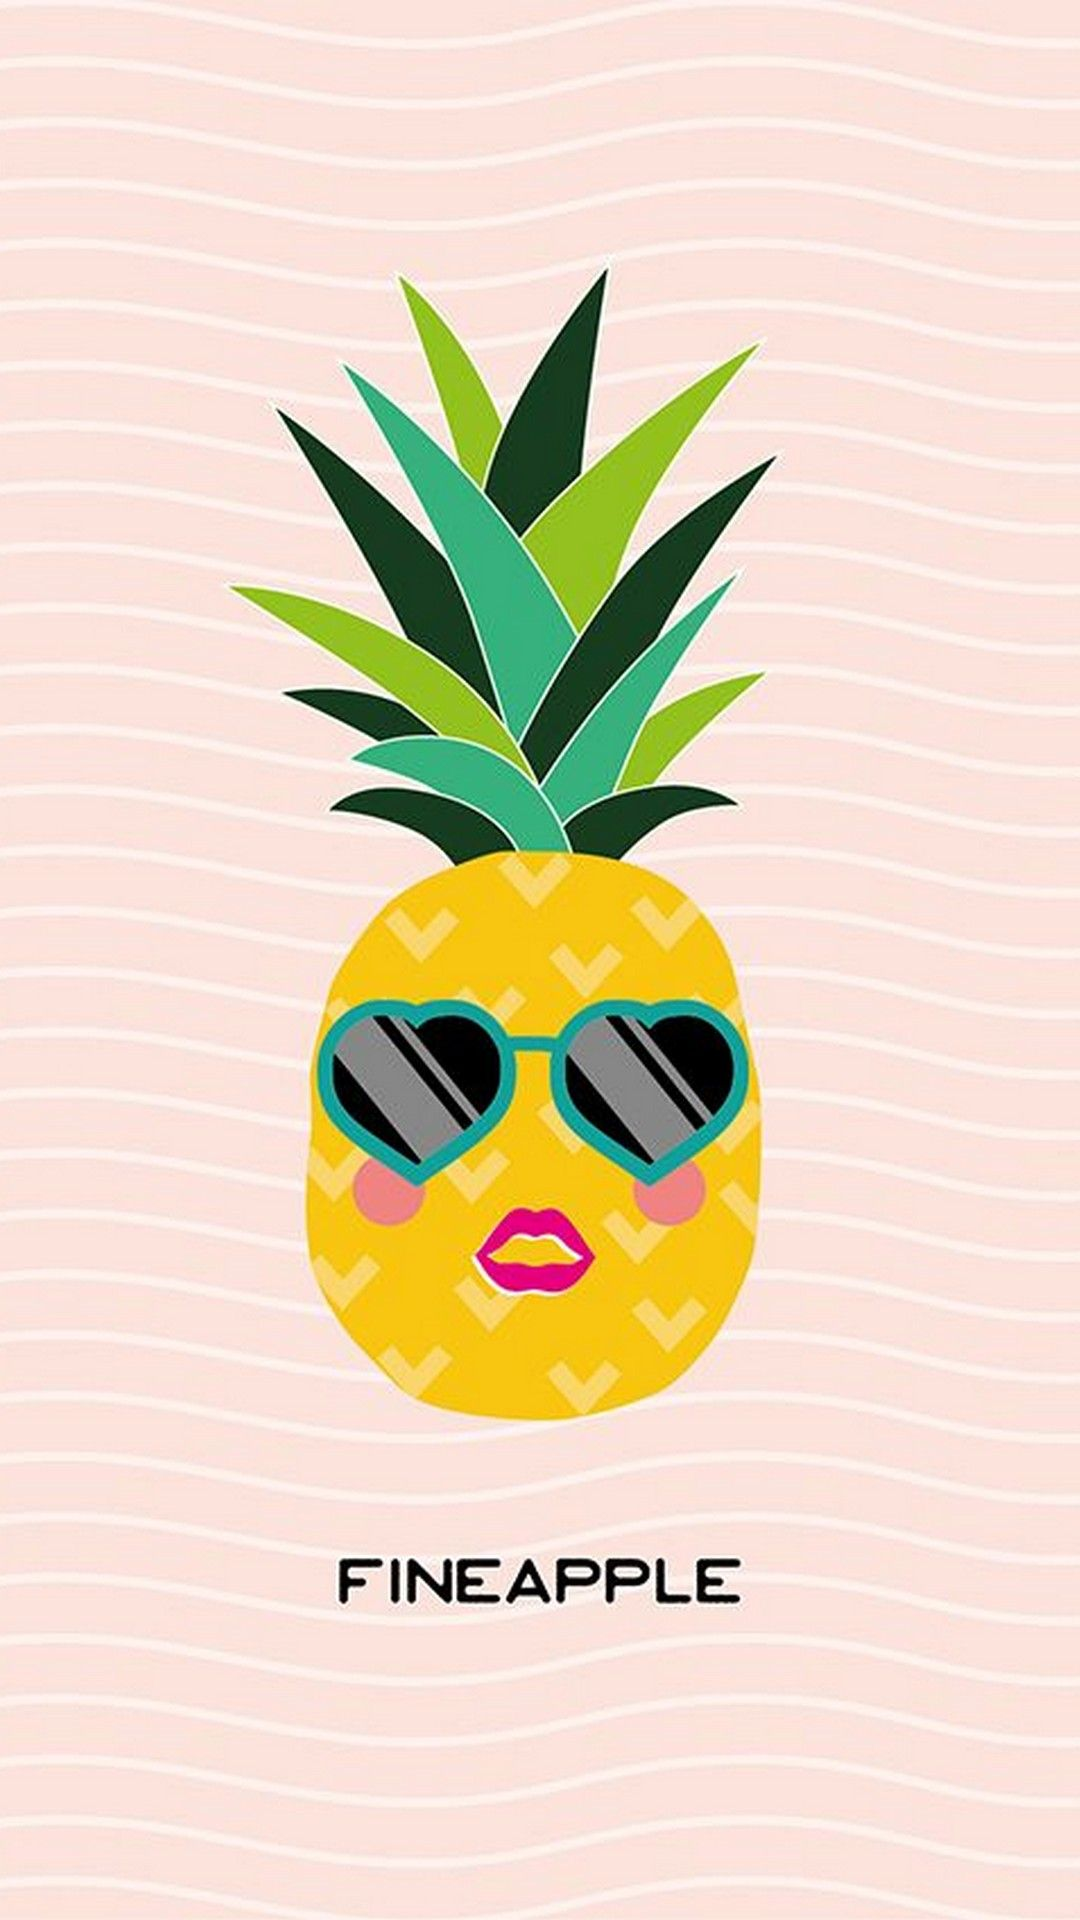 Cute Pineapple Wallpaper For Mobile Best Hd Wallpapers Cute Pineapple Wallpaper Pineapple Wallpaper Pineapple Backgrounds